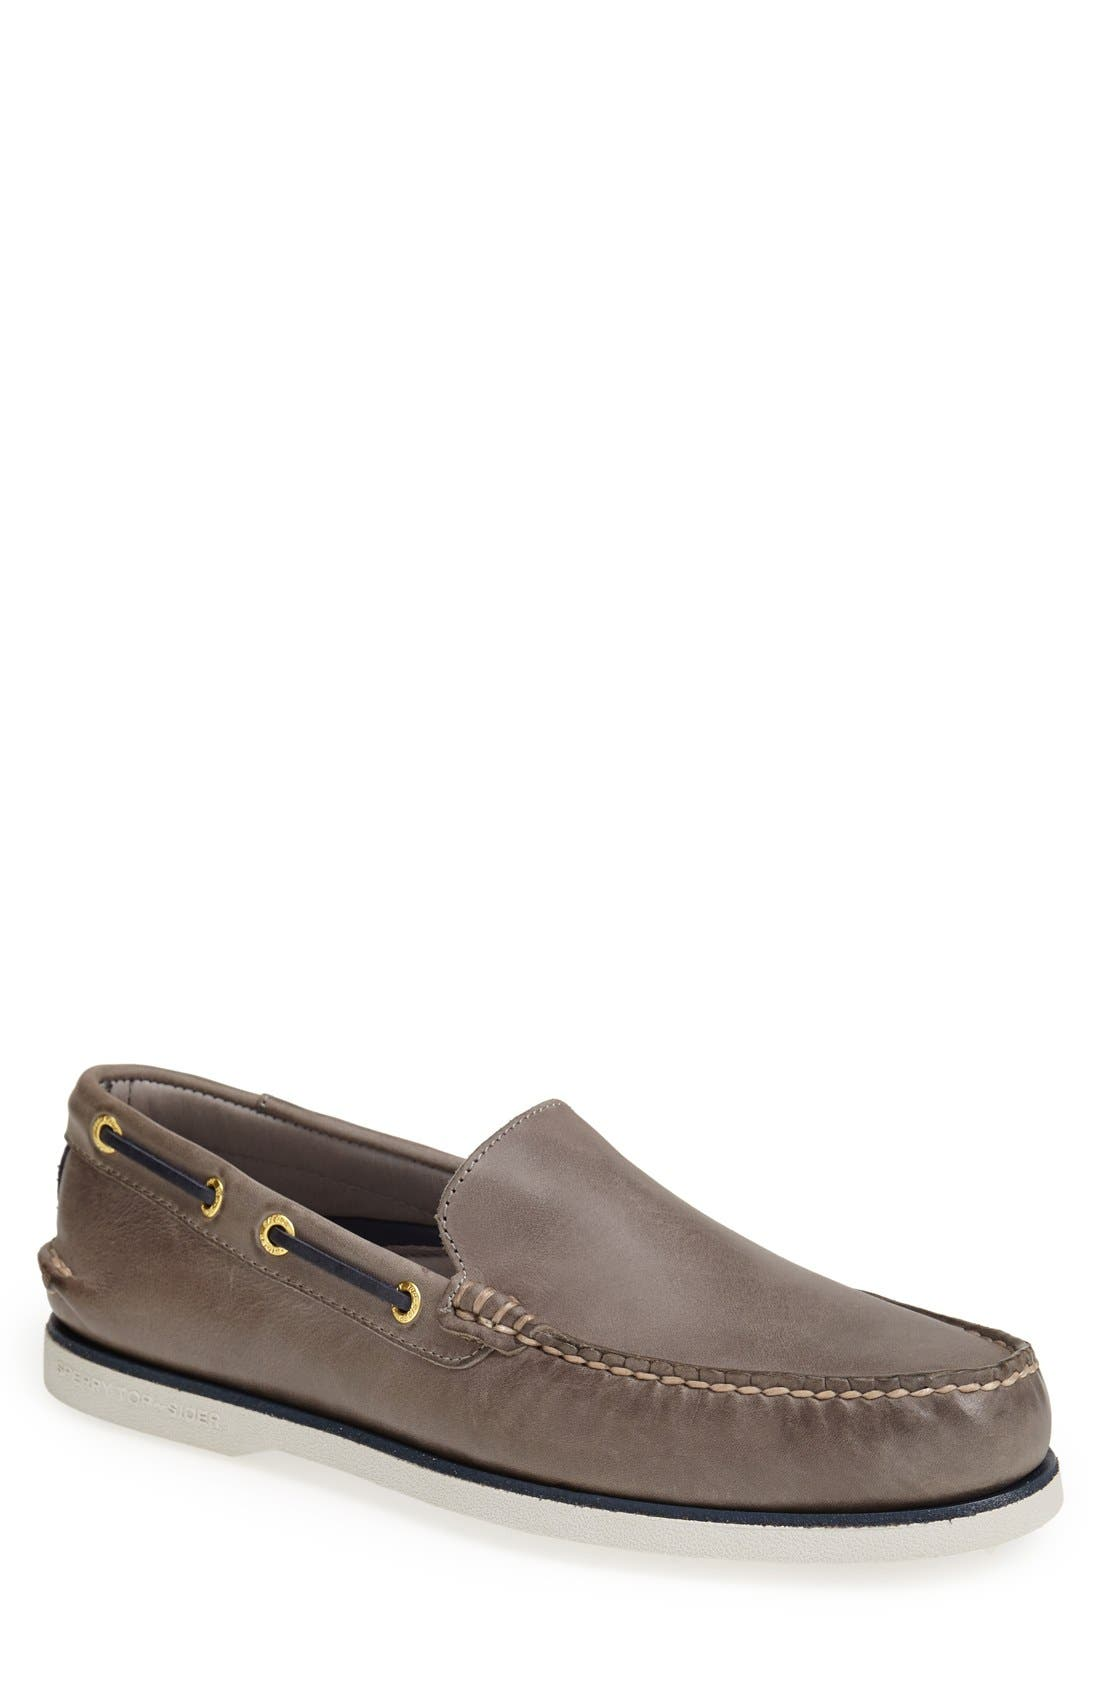 Top-Sider<sup>®</sup> 'Gold Cup - Authentic Original' Boat Shoe, Main, color, 020